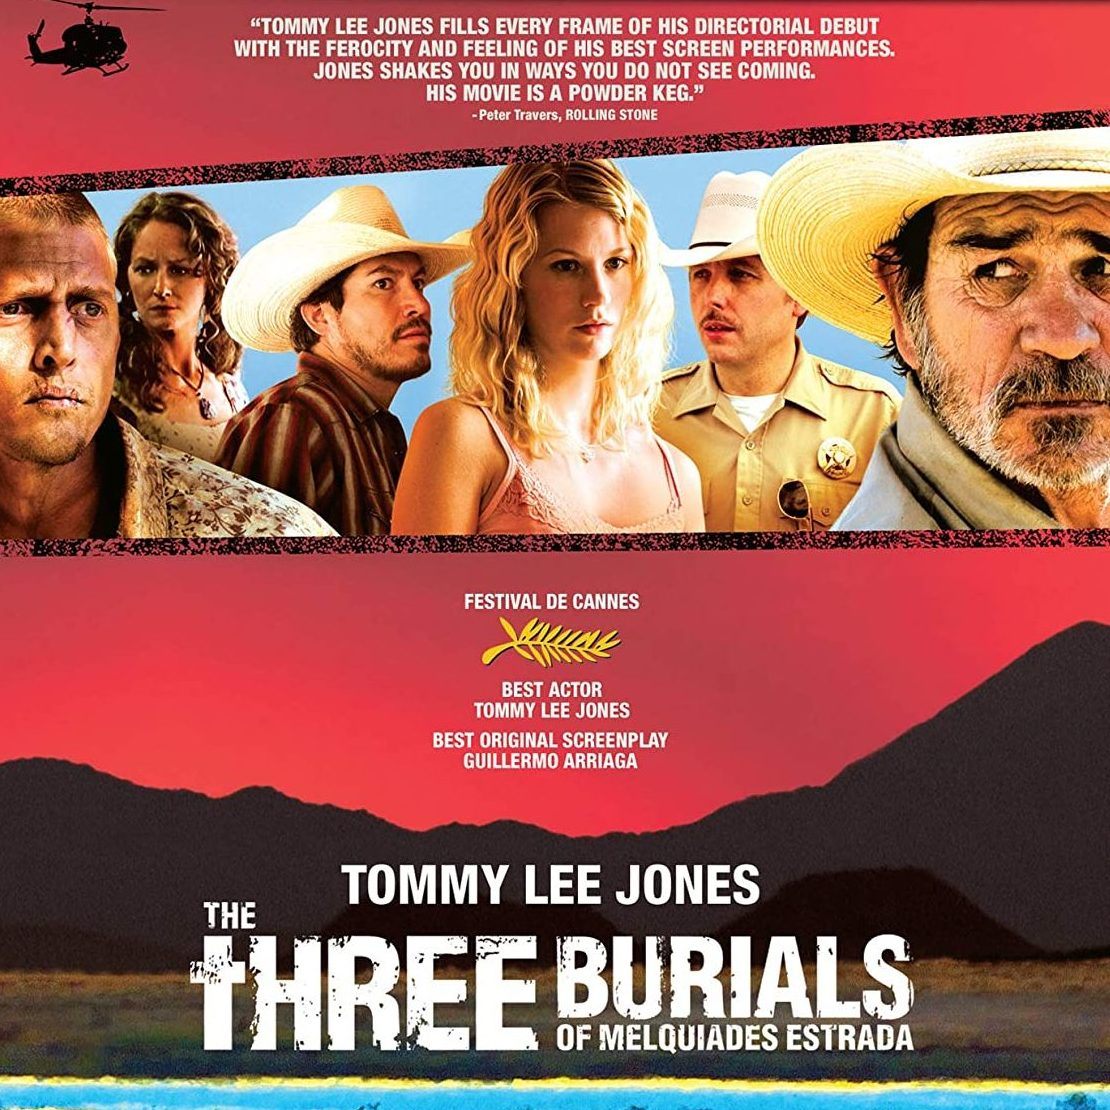 81WYjIQCPnL. AC SL1500 e1602234416271 20 Things You Never Knew About Tommy Lee Jones